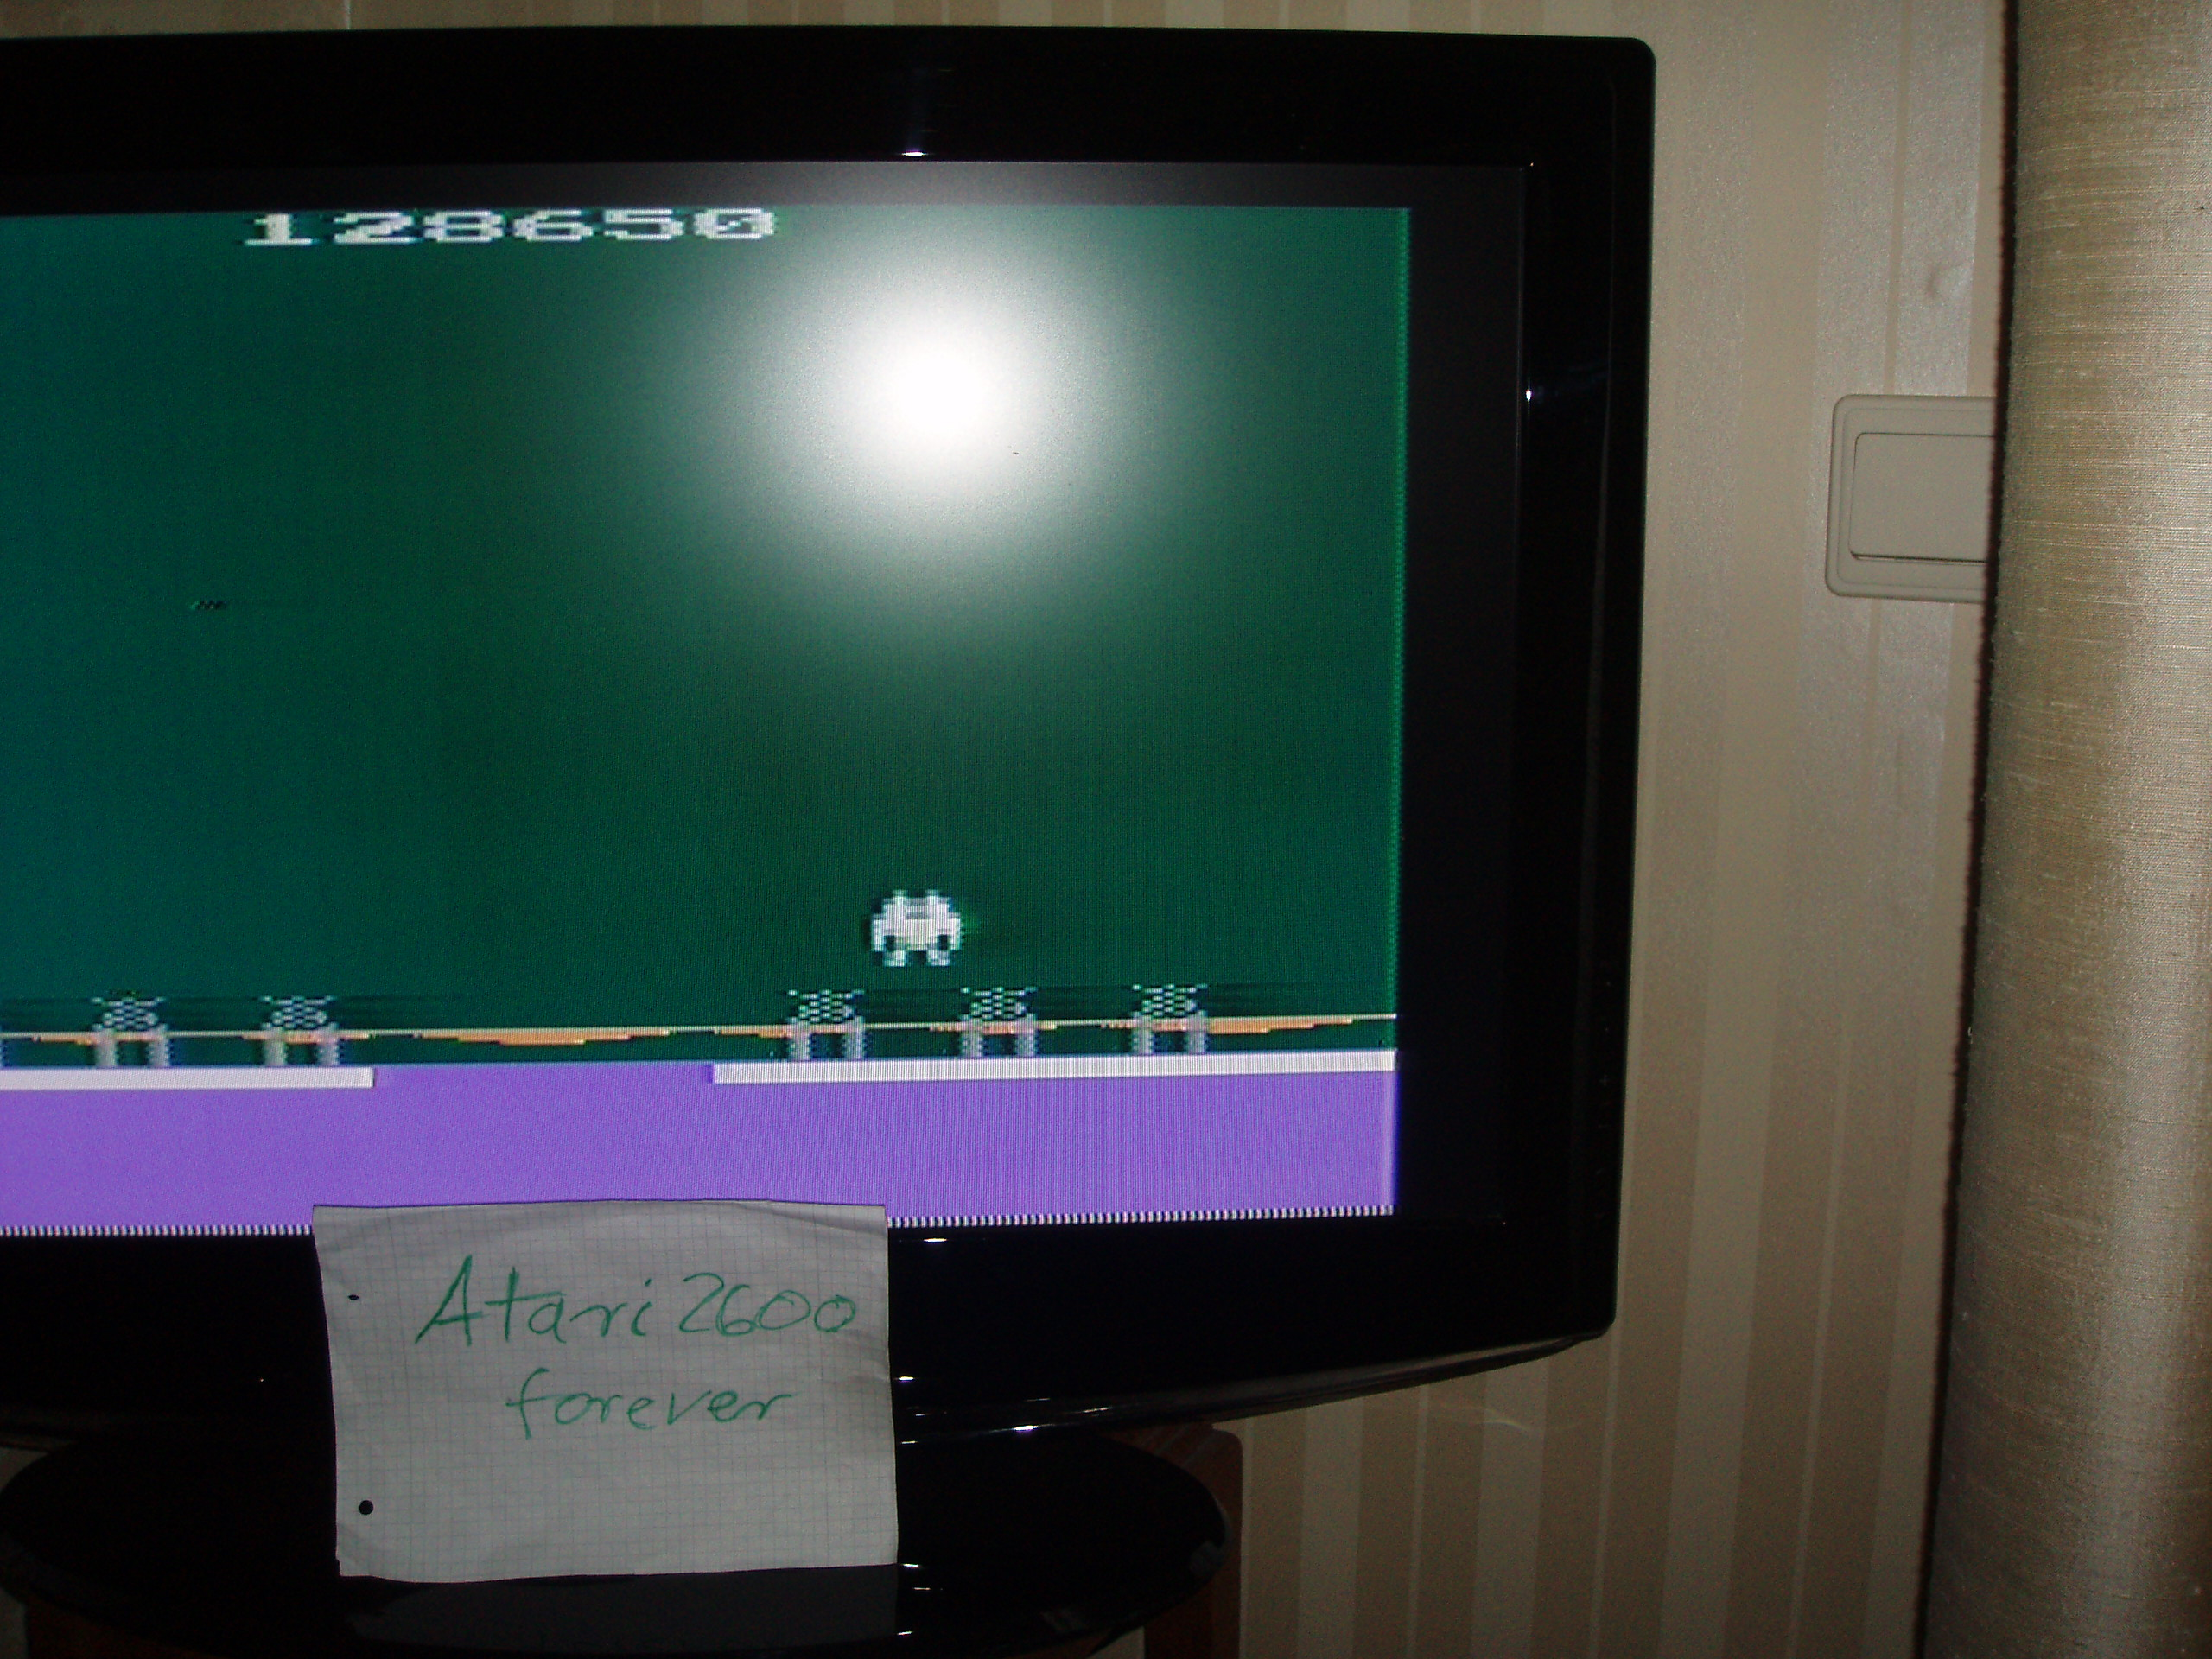 atari2600forever: Robot Fight (Atari 2600 Novice/B) 128,650 points on 2017-04-18 05:12:40